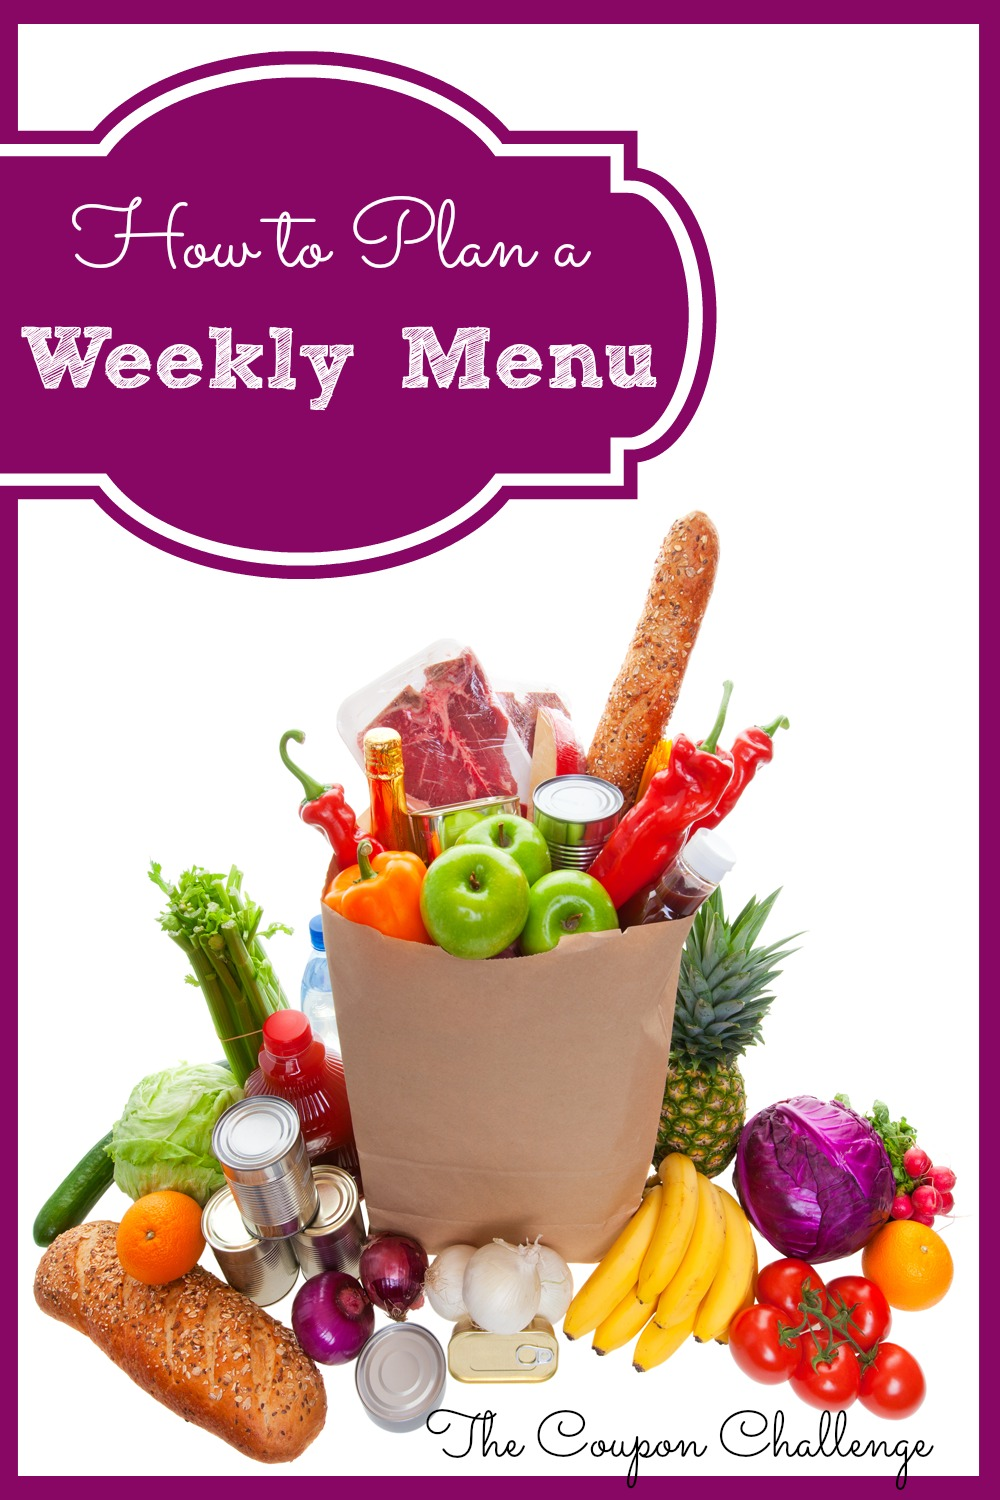 How-to-Plan-a-Weekly-Menu